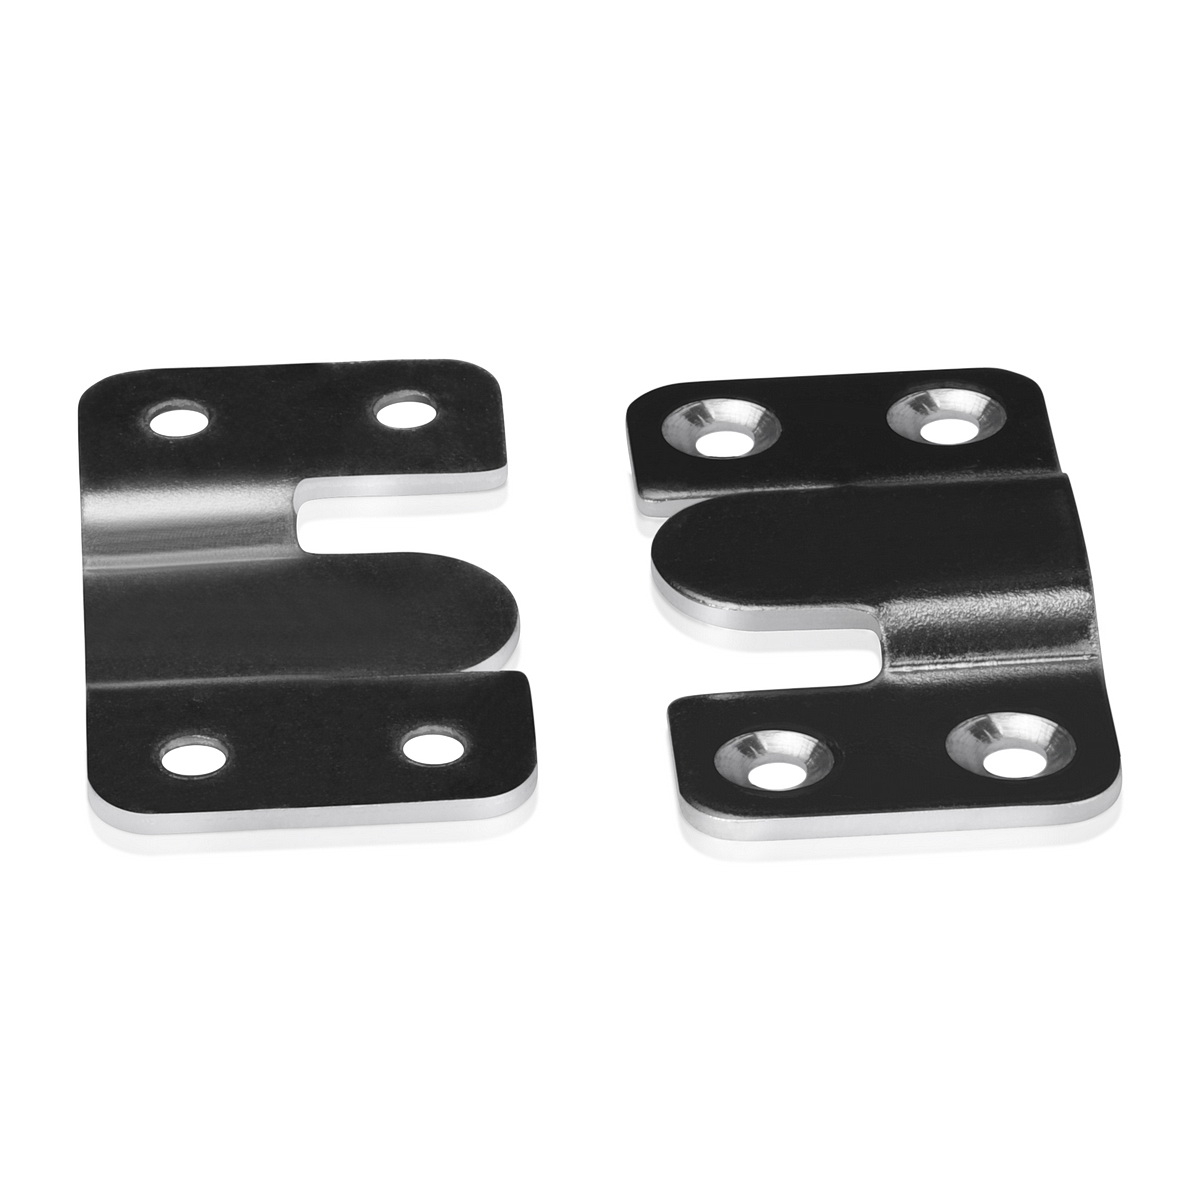 Big  Flush Mount Hanger (Pair), 2 1/6'' x 1 3/16''